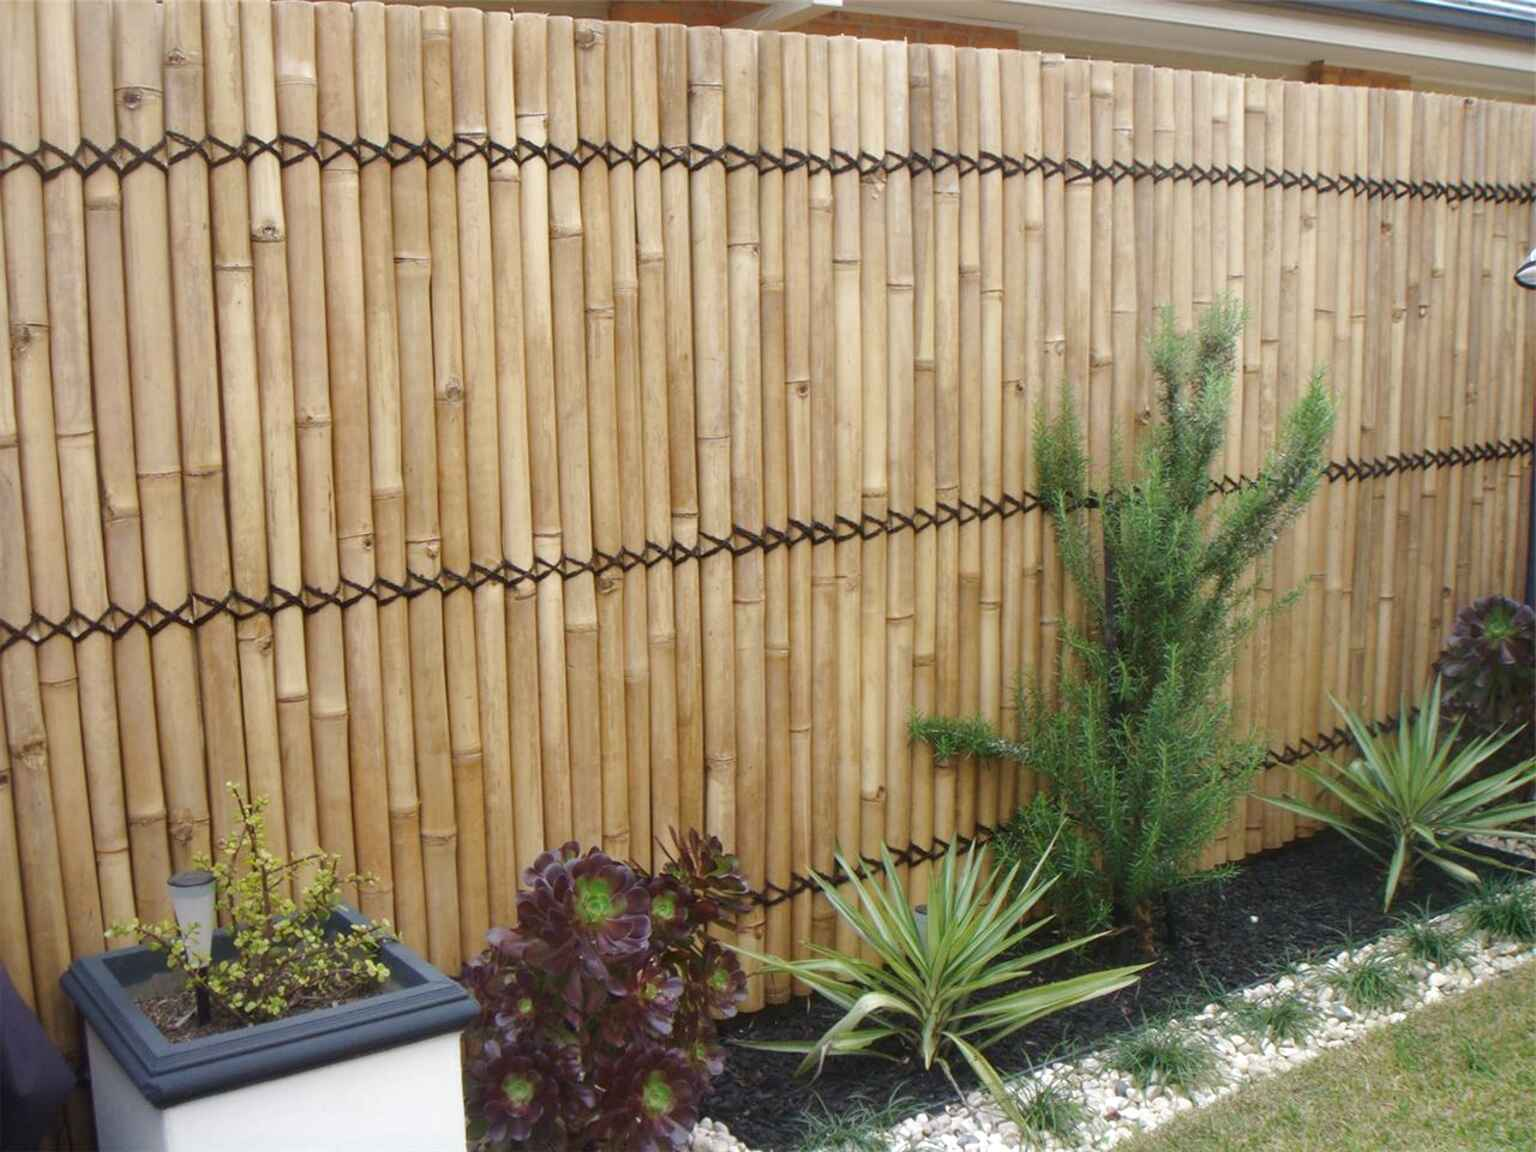 Garden Bamboo Screening For Sale In Uk View 59 Bargains